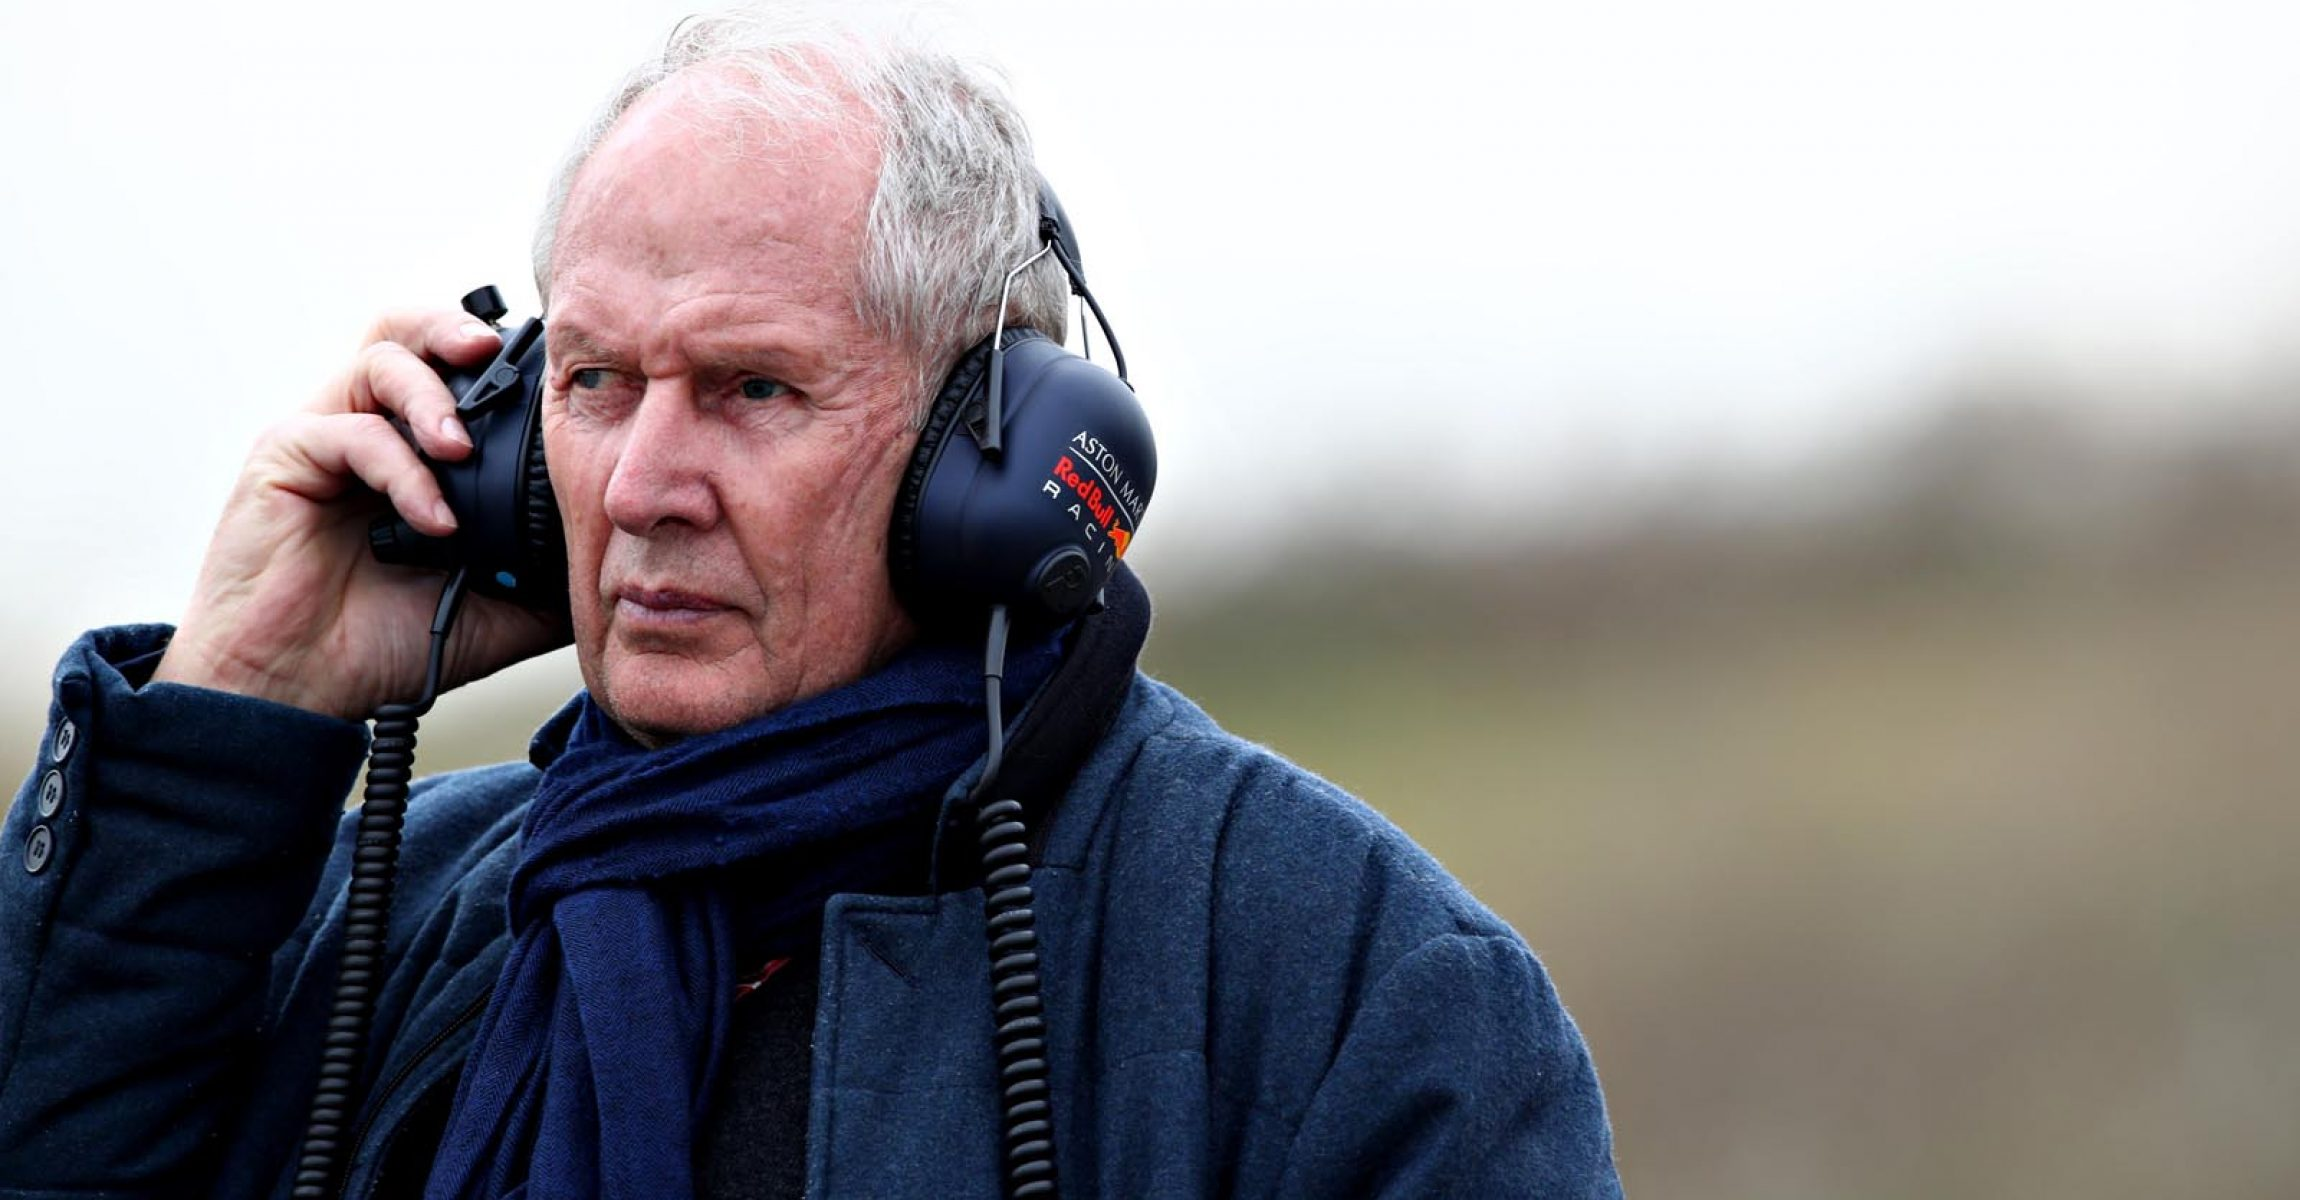 MONTMELO, SPAIN - FEBRUARY 20: Red Bull Racing Team Consultant Dr Helmut Marko looks on during day three of F1 Winter Testing at Circuit de Catalunya on February 20, 2019 in Montmelo, Spain. (Photo by Mark Thompson/Getty Images) // Getty Images / Red Bull Content Pool  // AP-1YGEN1SY91W11 // Usage for editorial use only // Please go to www.redbullcontentpool.com for further information. //